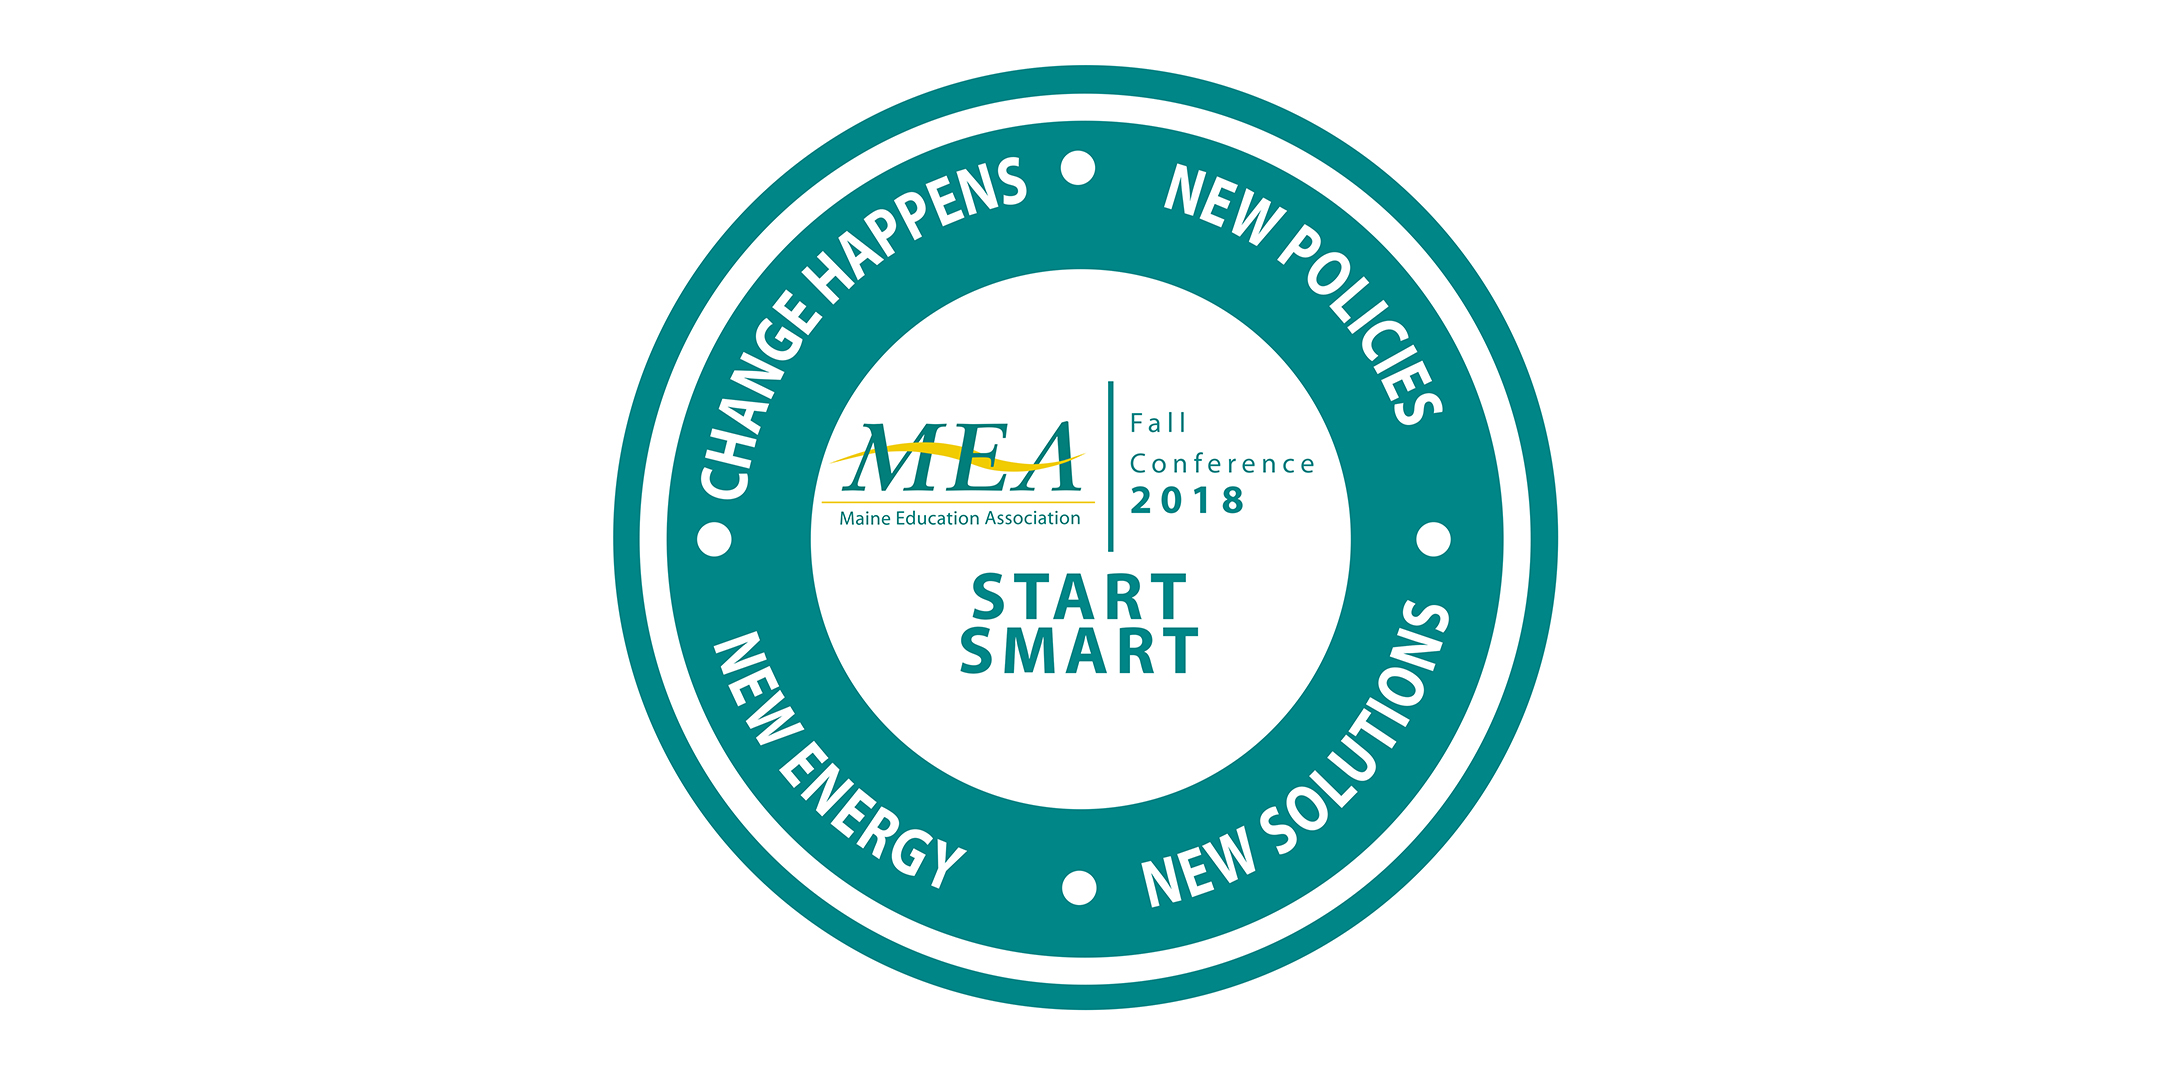 2018 MEA Fall Conference